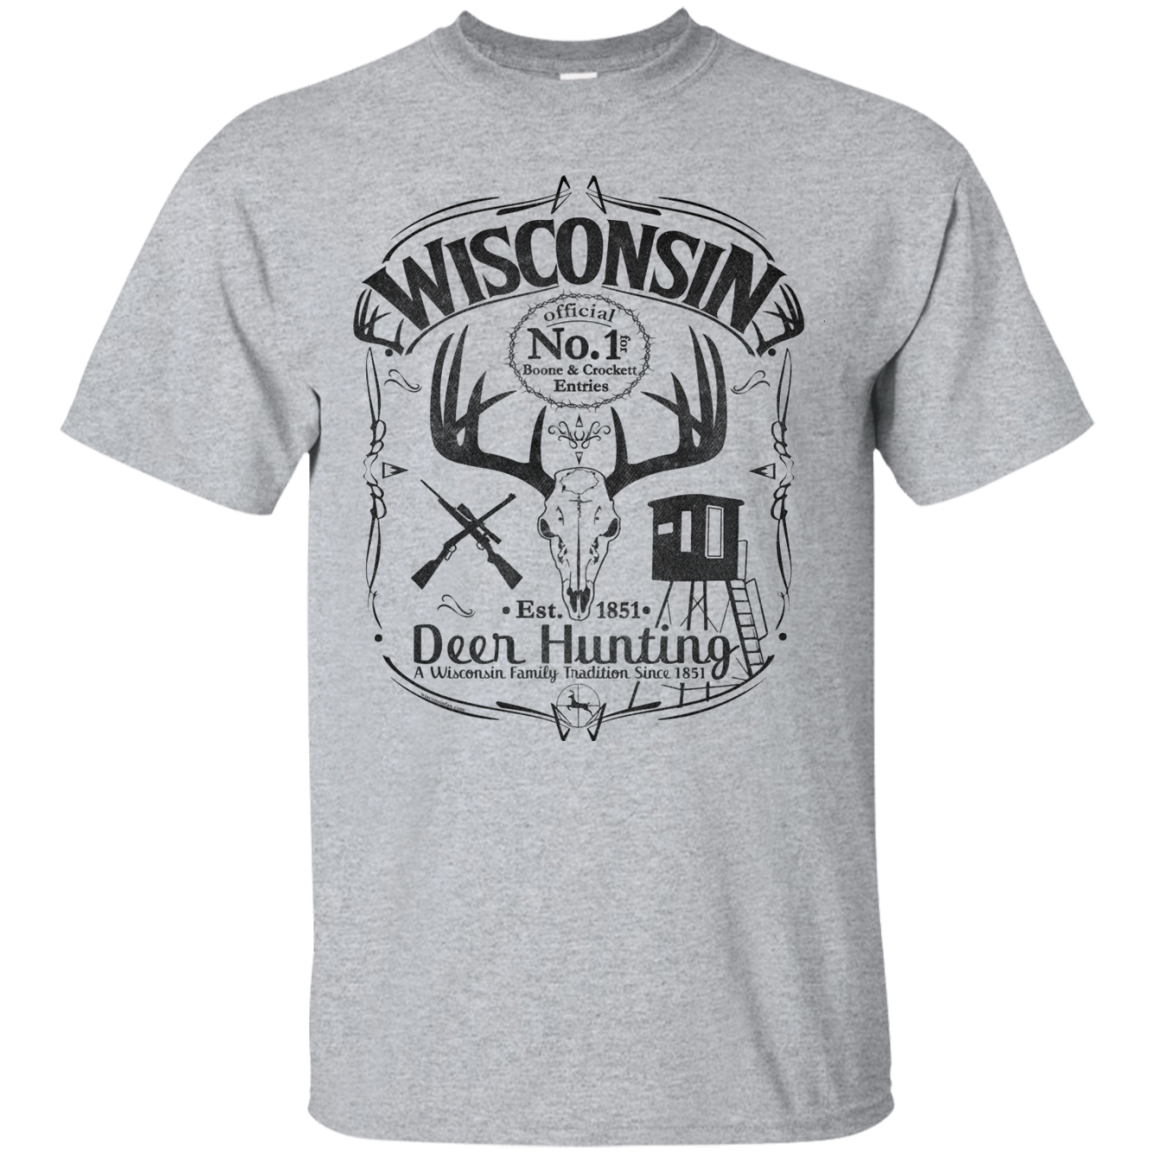 Wisconsin B&C Deer Hunter T Shirt Blk WisconsinFan